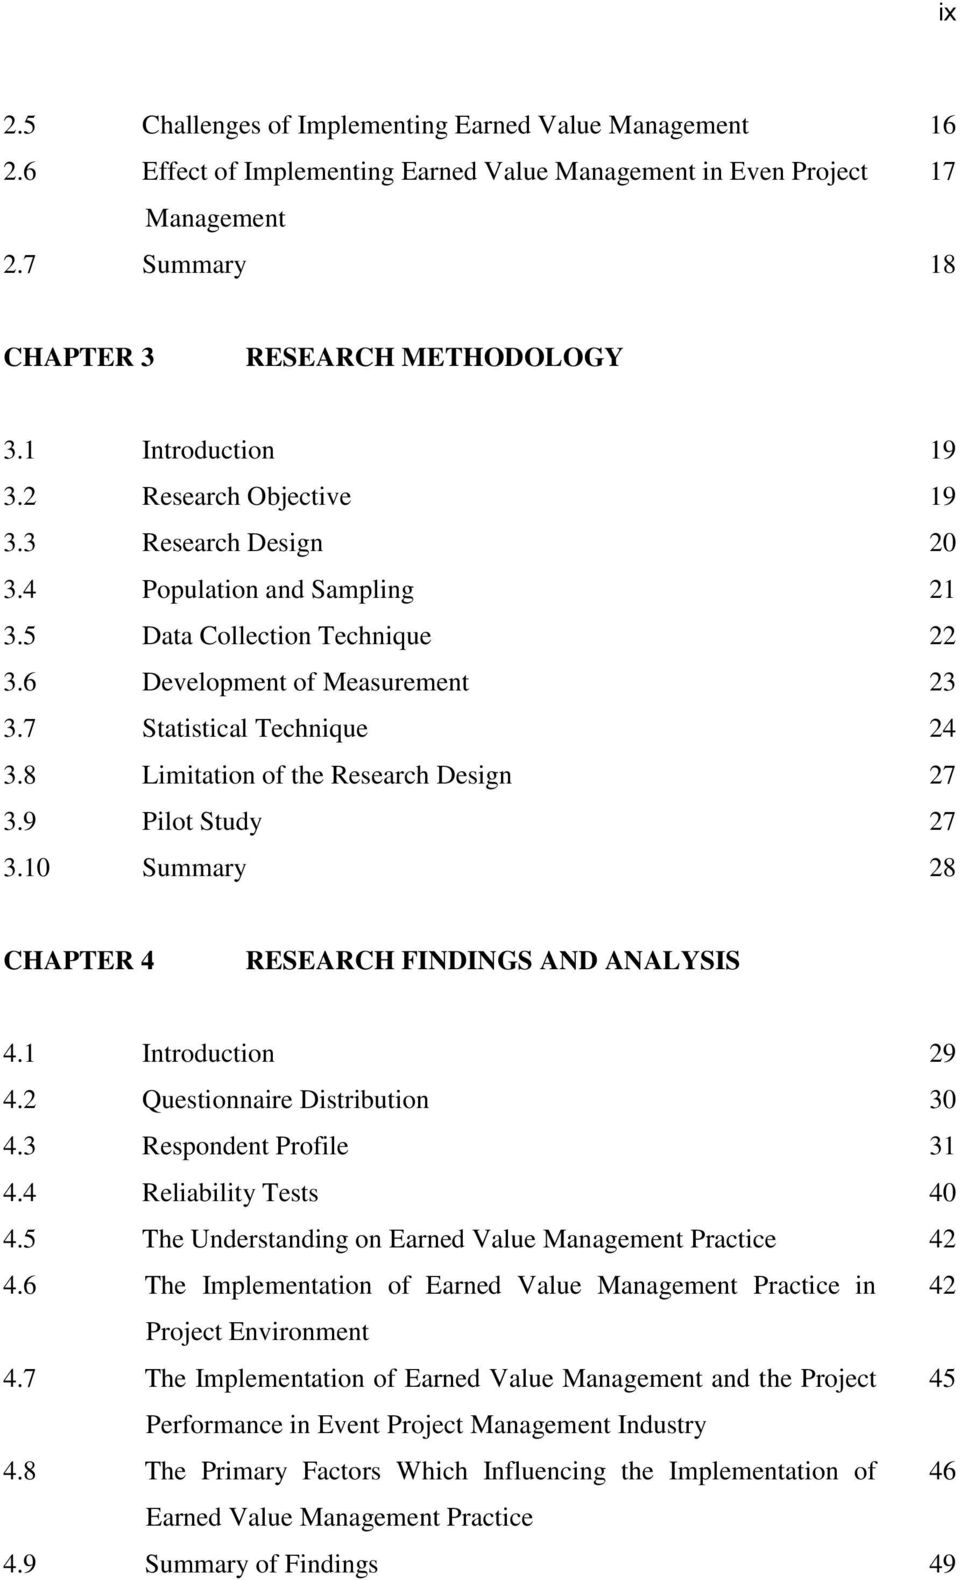 8 Limitation of the Research Design 27 3.9 Pilot Study 27 3.10 Summary 28 CHAPTER 4 RESEARCH FINDINGS AND ANALYSIS 4.1 Introduction 29 4.2 Questionnaire Distribution 30 4.3 Respondent Profile 31 4.